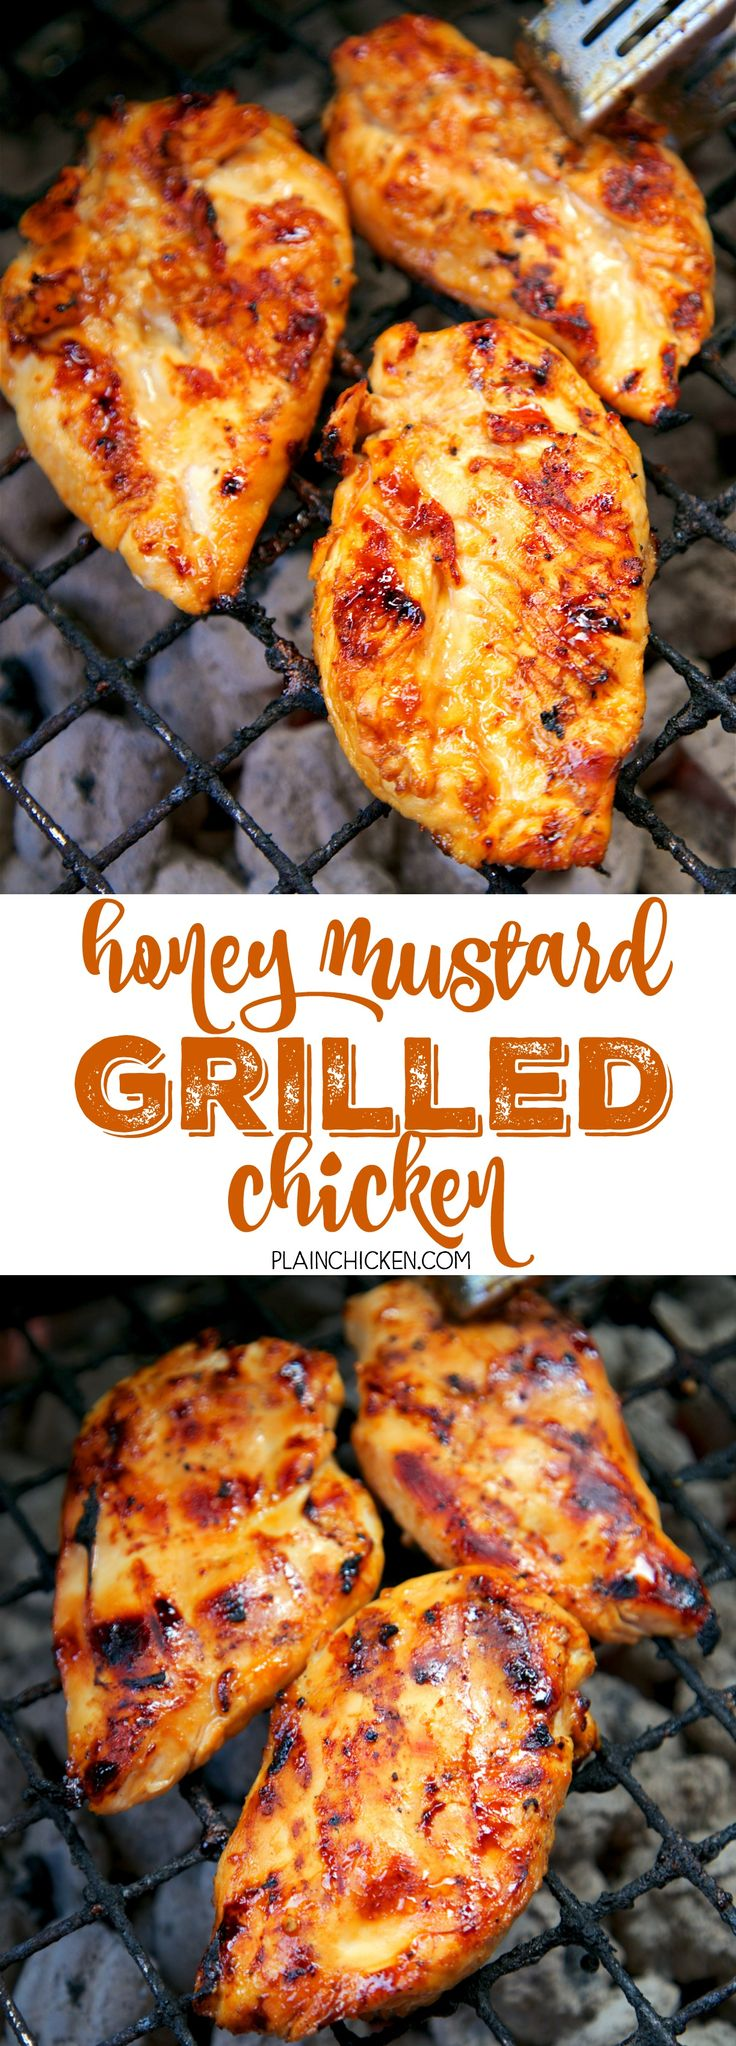 Honey Mustard Grilled Chicken - only 5 ingredients in the marinade! Honey, dijon mustard, lemon juice, soy sauce and garlic. SO simple and delicious! Everyone cleaned their plate! Can also use the marinade on pork.